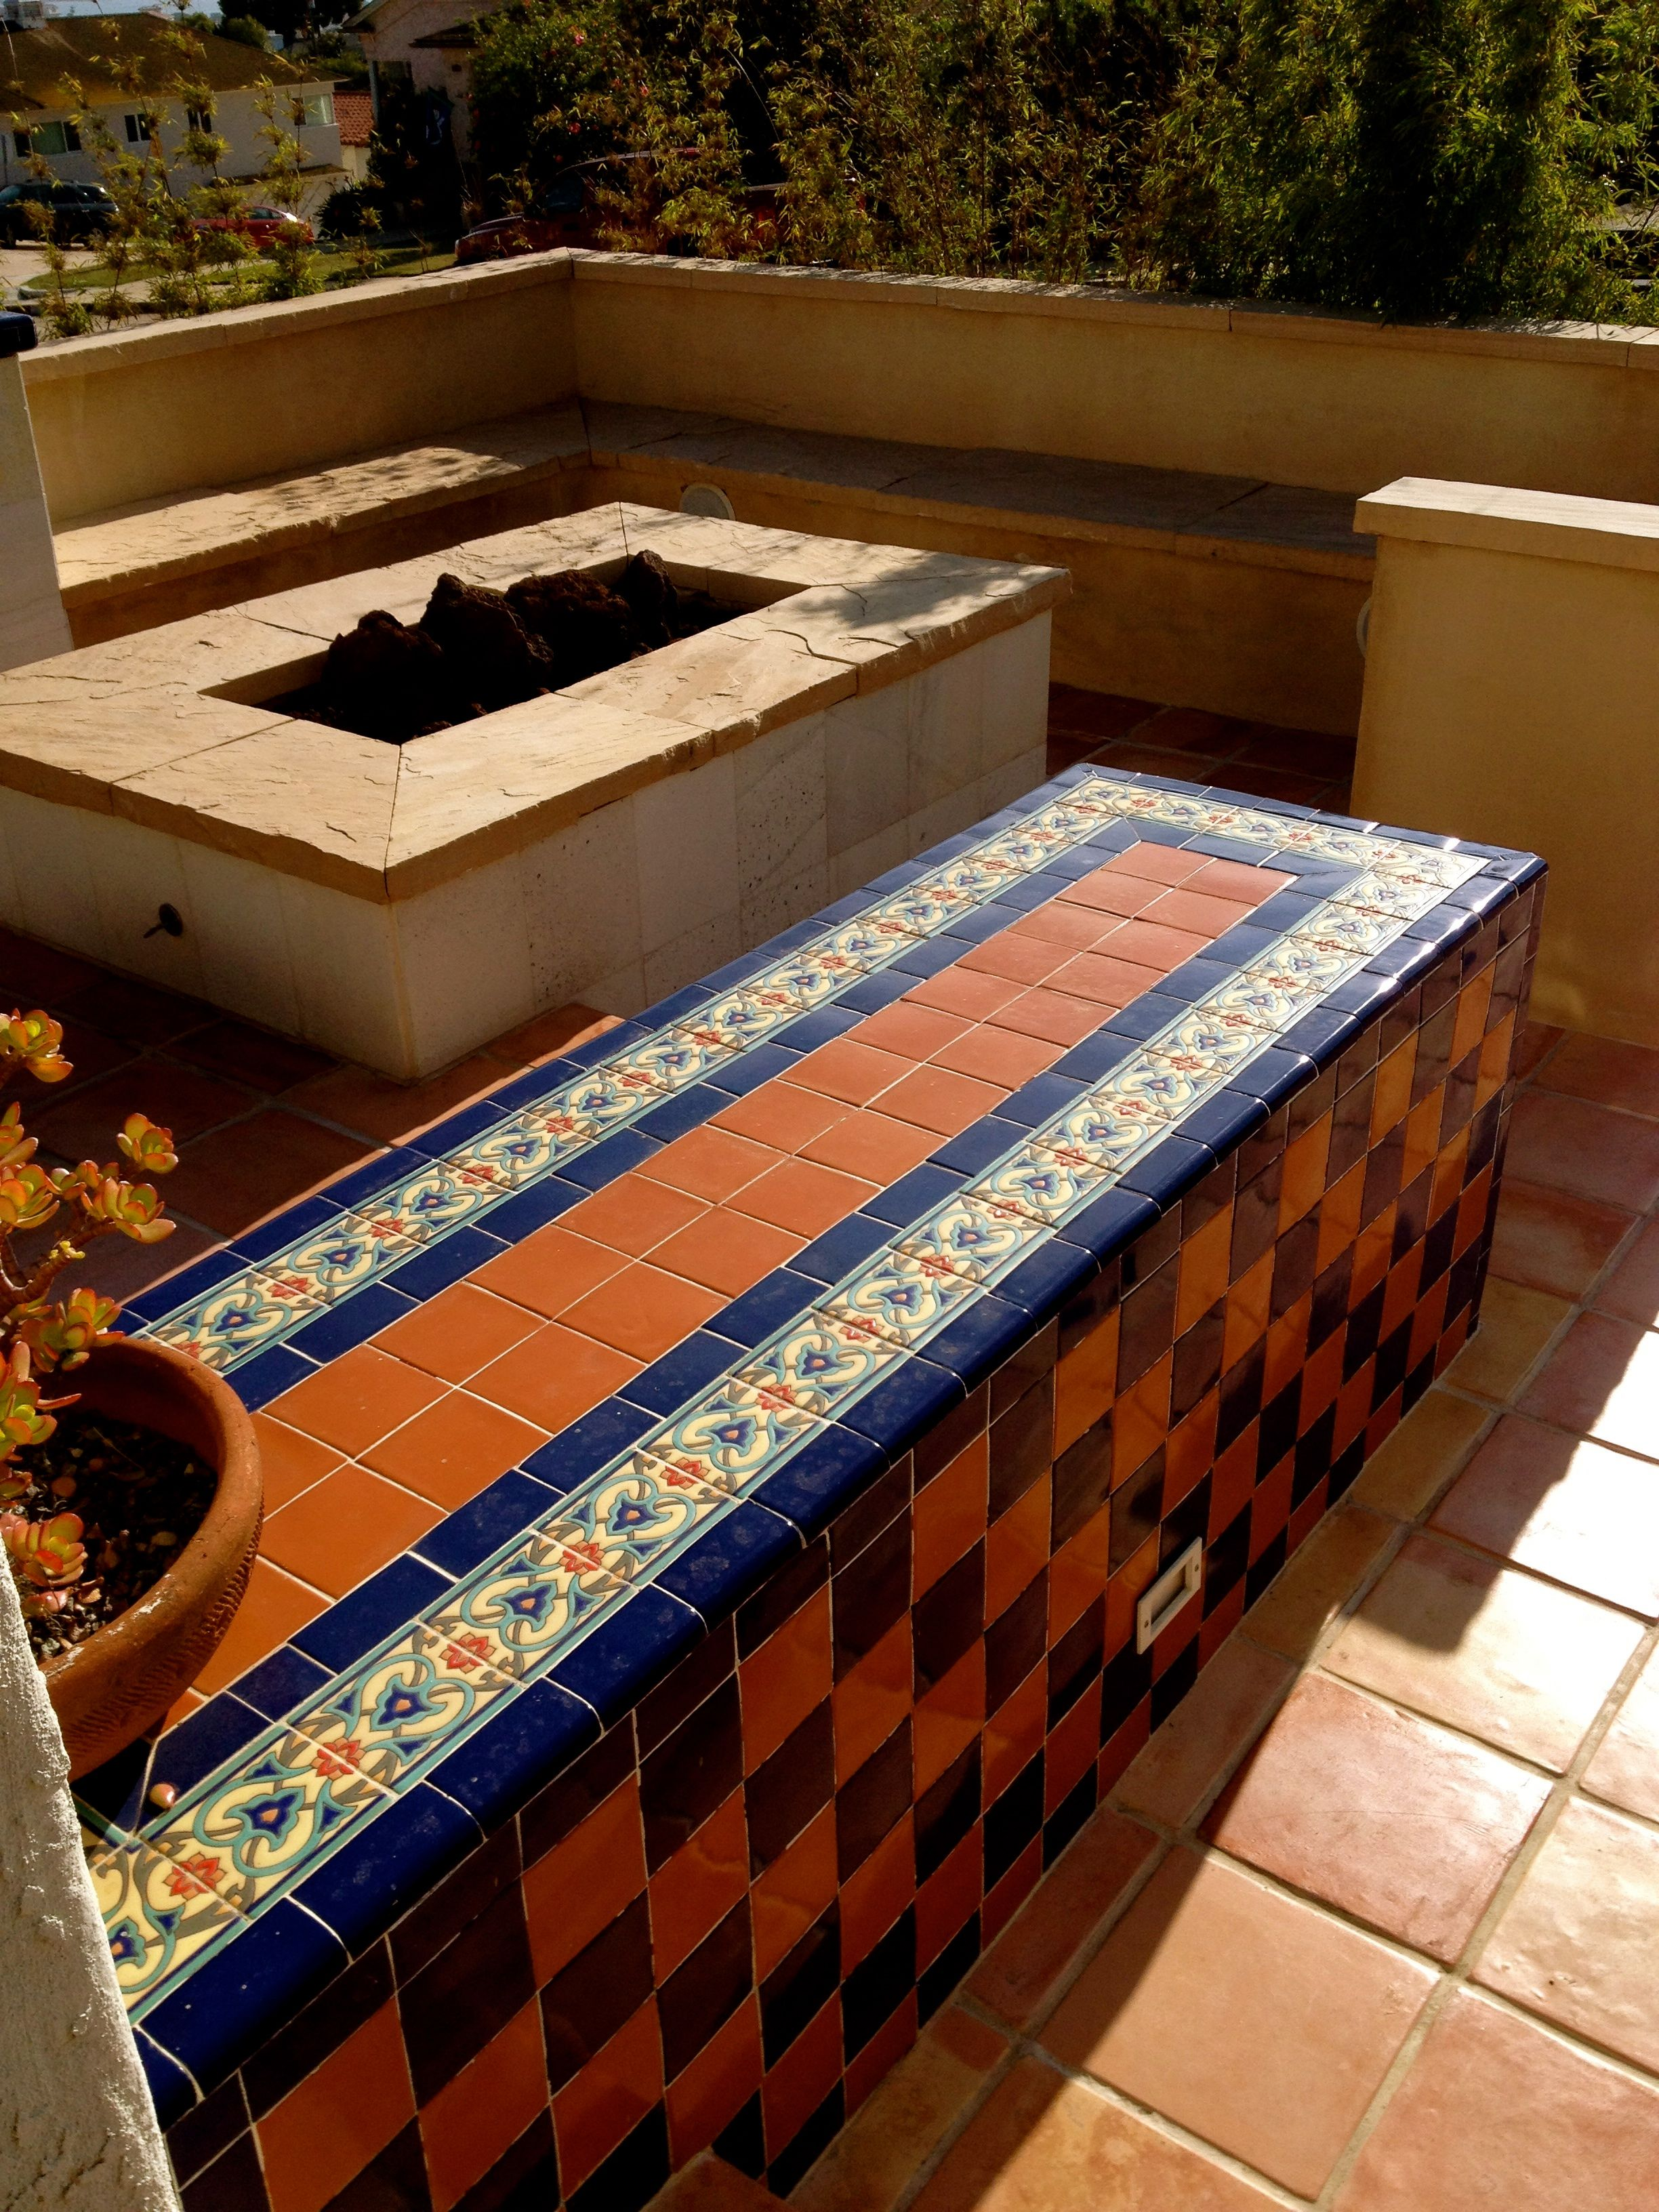 Decorative Patio Tiles Cool Patio Project With Bench In Hand Painted And Handcrafted Decorating Design